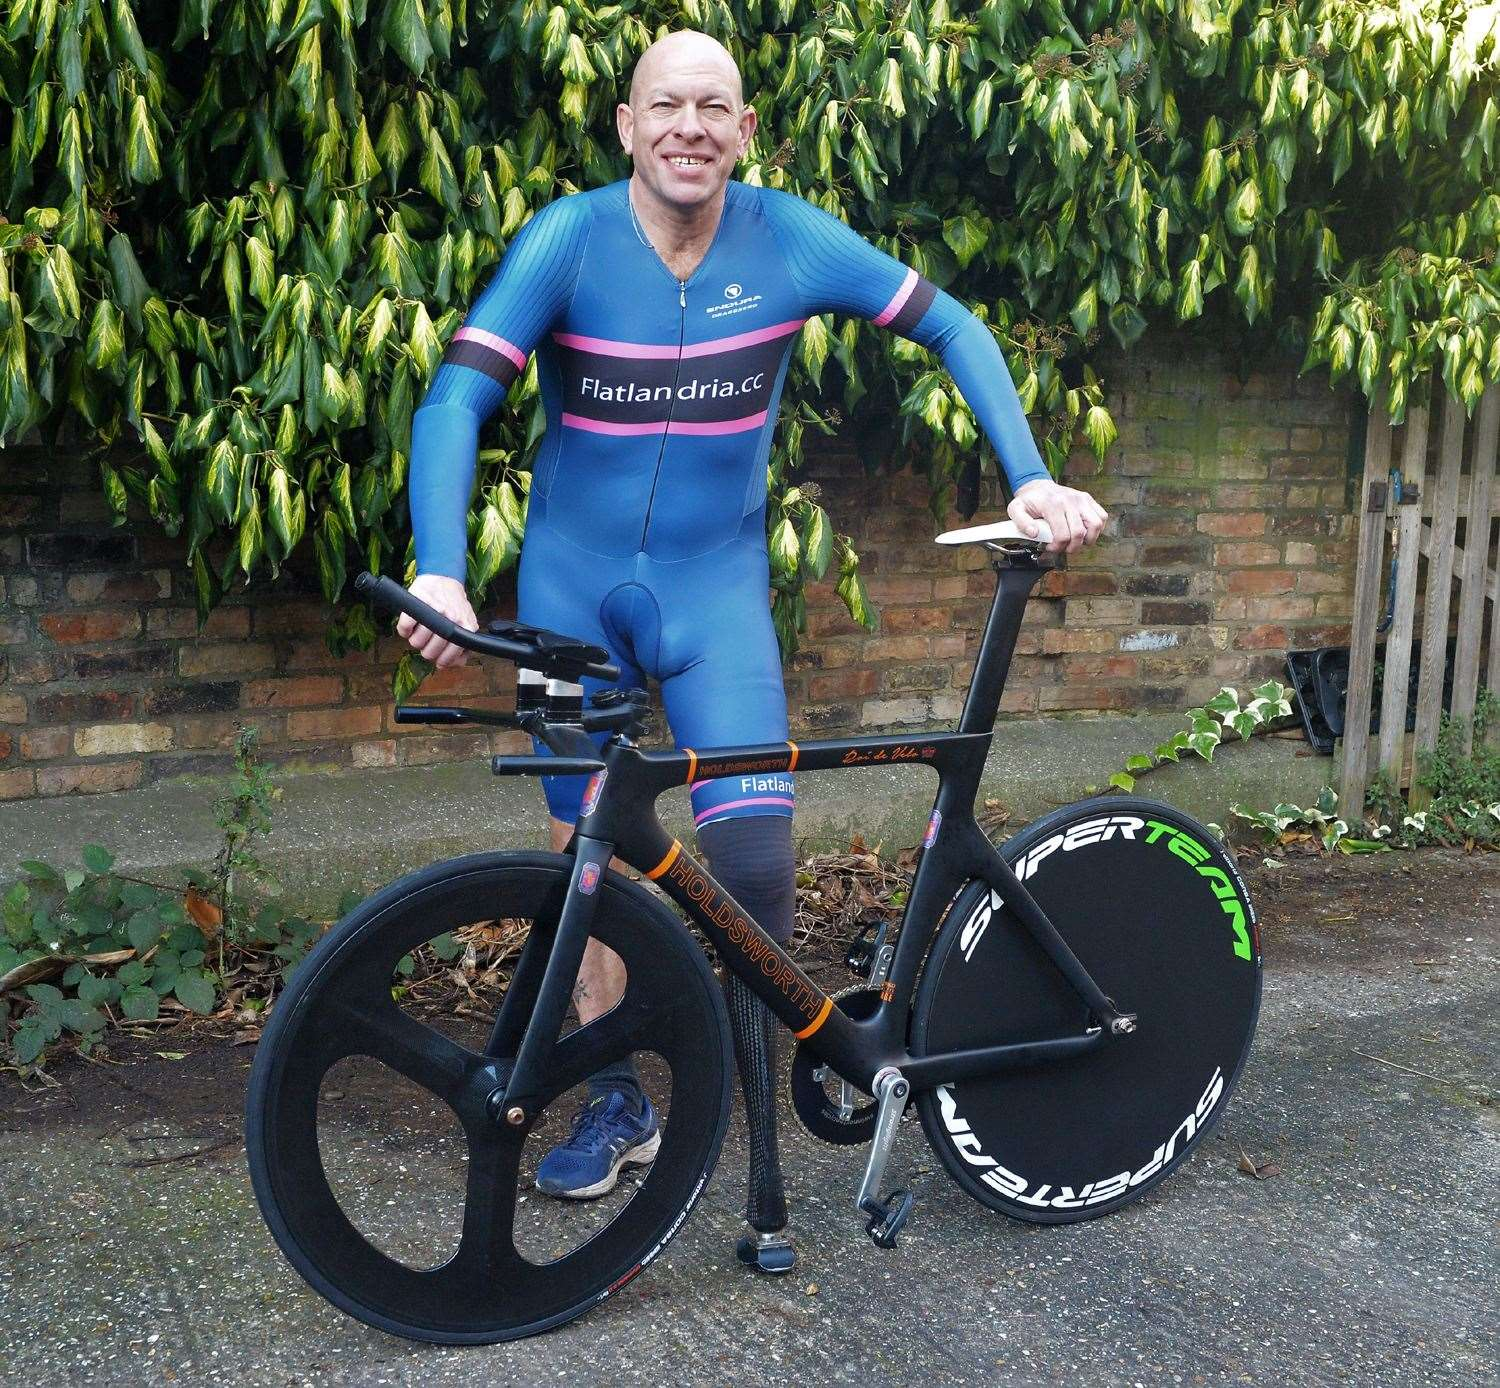 Wayne Harrod with the bike on which he set his world record